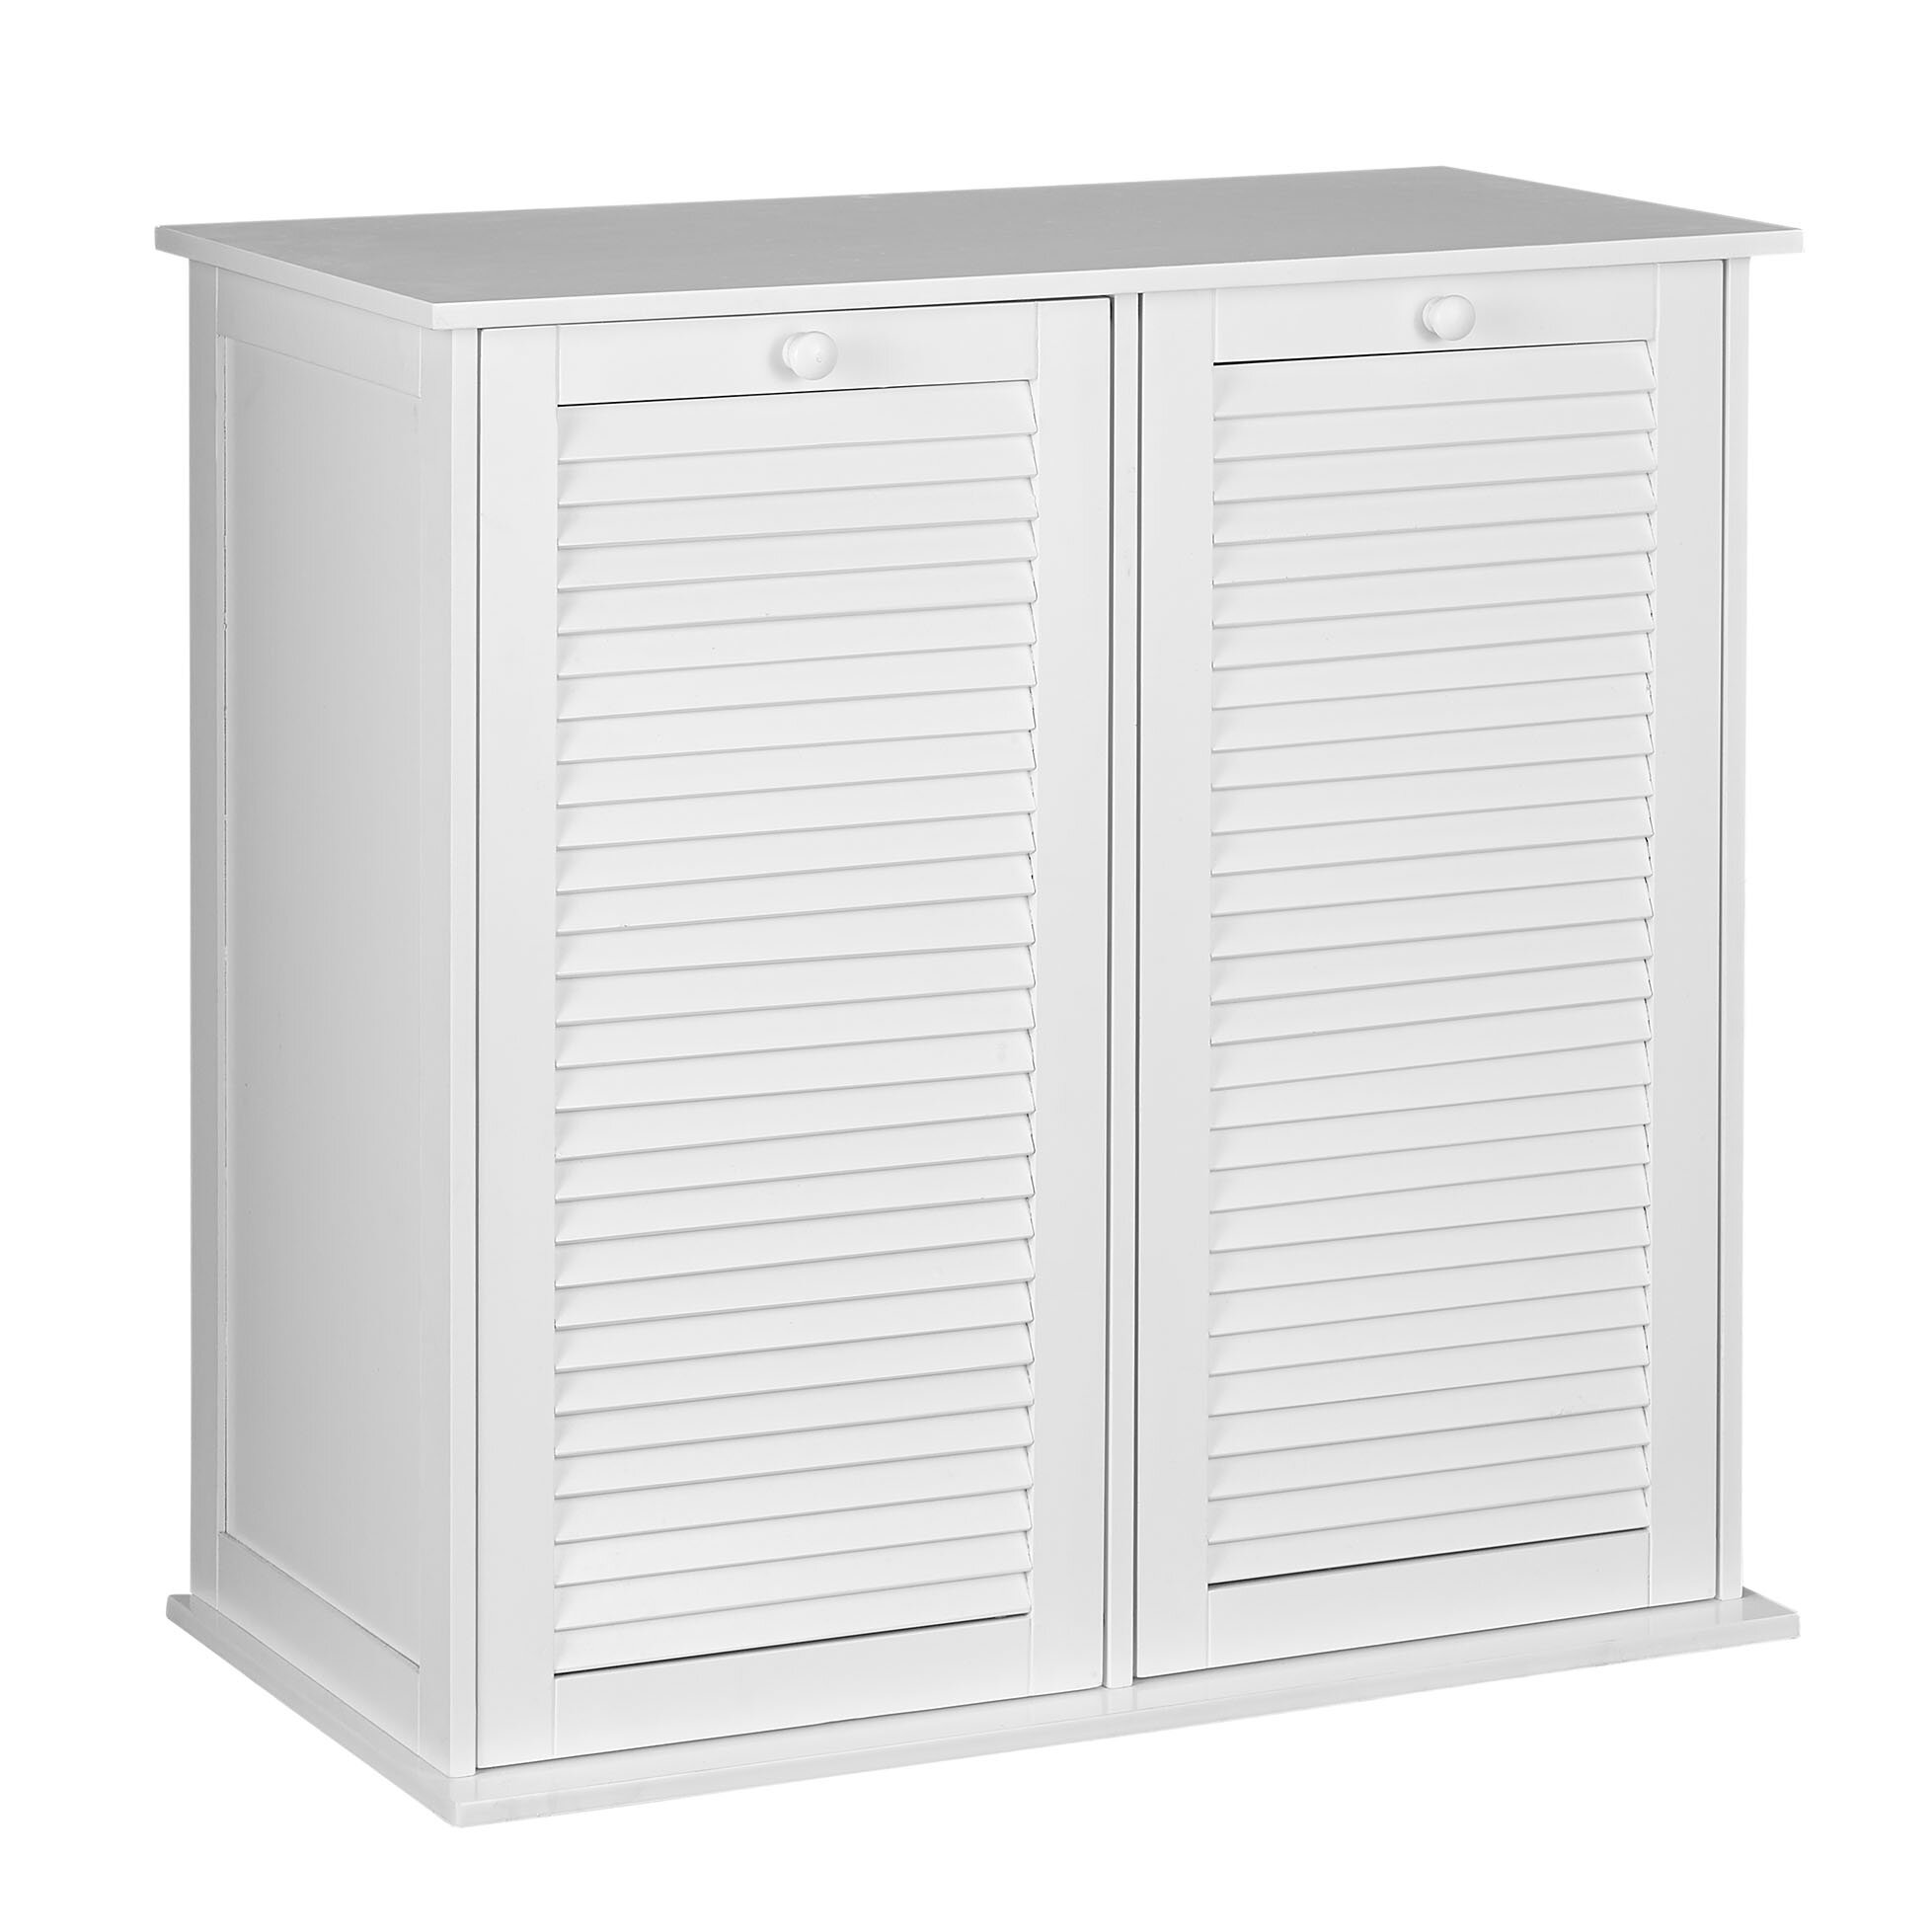 Finest Cabinet Laundry Hamper With Built In Laundry Hamper